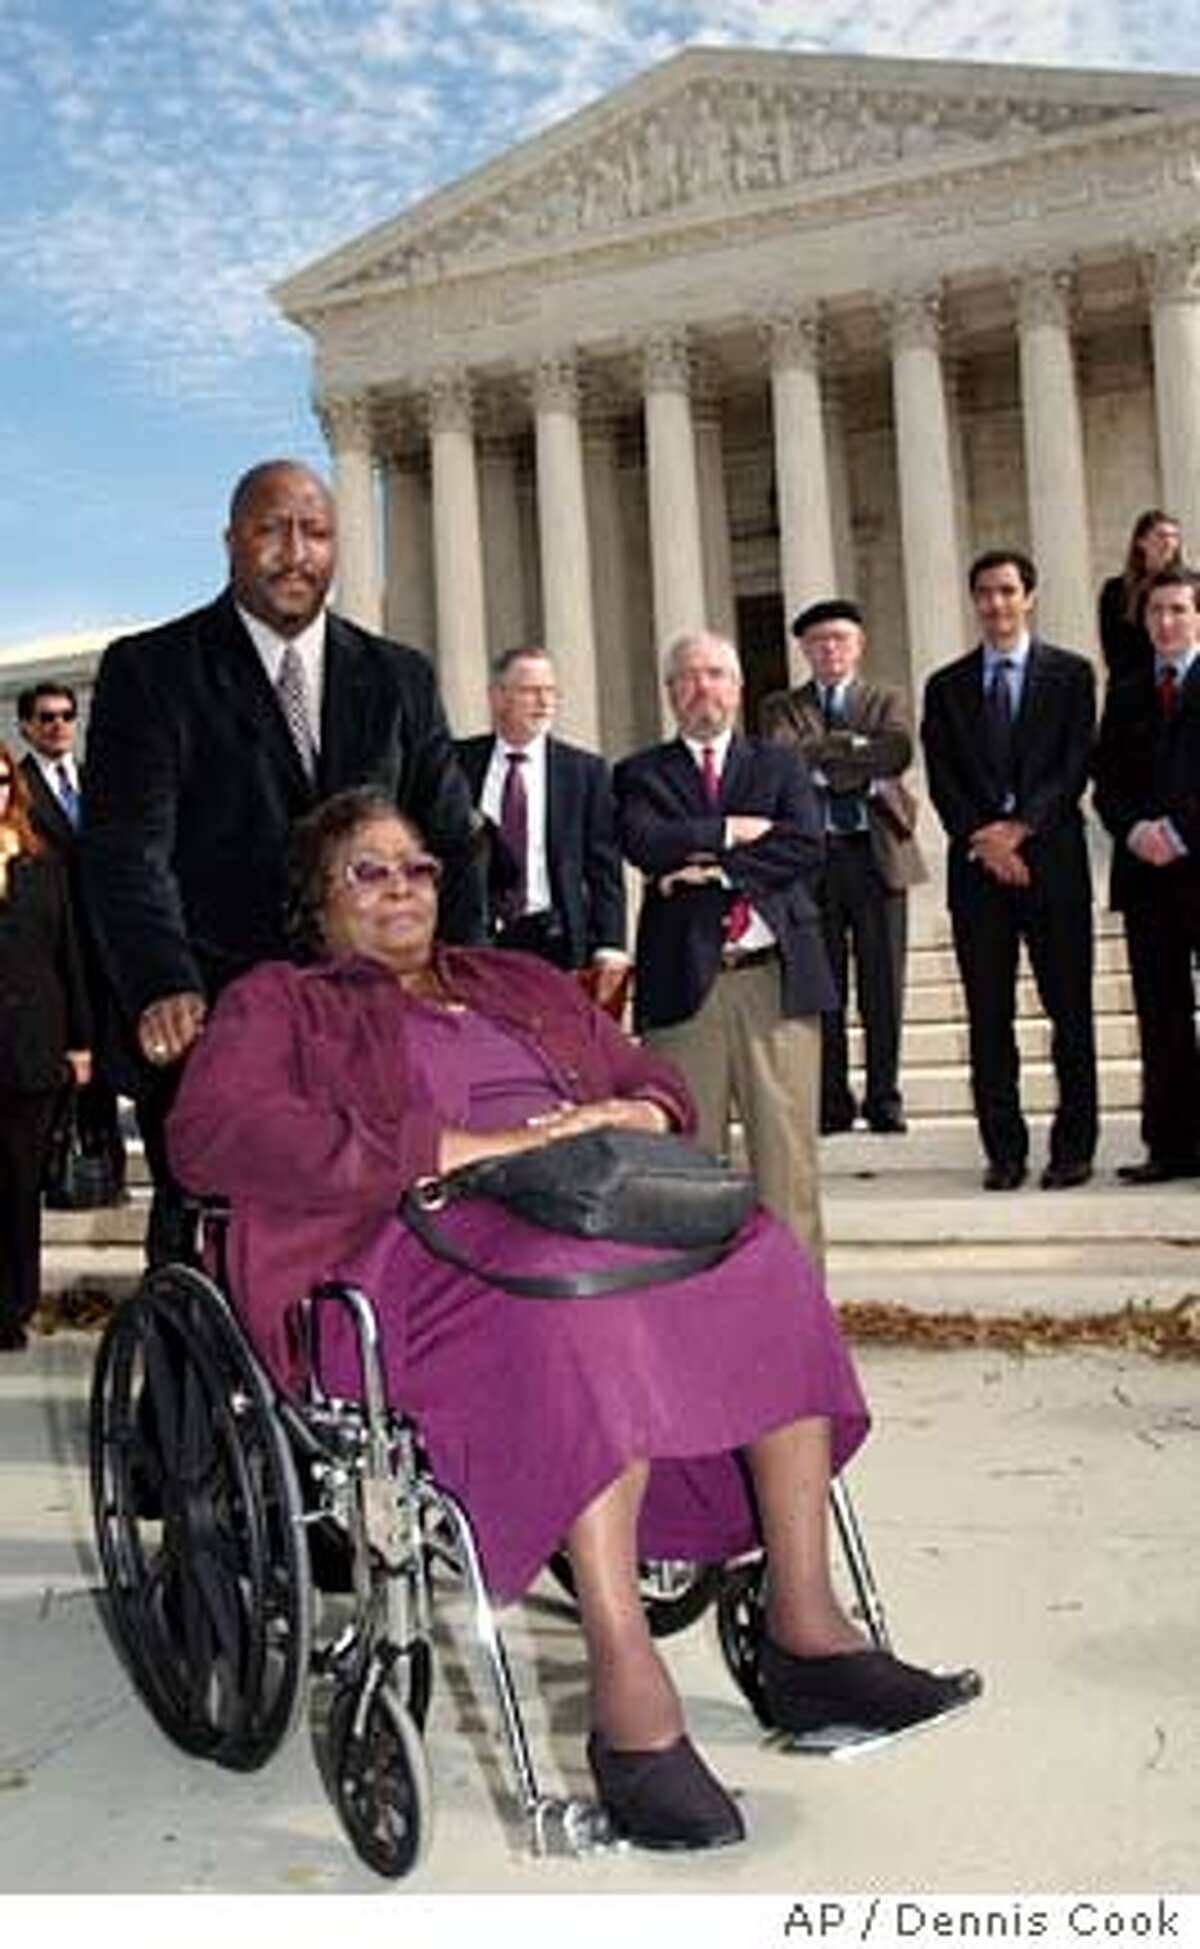 **FILE** Mayola Williams, in wheelchair, widow of Jesse Williams, who died of lung cancer, leaves the Supreme Court in Washington in this Oct. 31, 2006 file photo, following oral arguments in her lawsuit against Philip Morris. The Supreme Court threw out a $79.5 million punitive damages award to Williams, Tuesday, Feb. 20, 2007, a boon to businesses seeking stricter limits on big-dollar jury verdicts. (AP Photo/Dennis Cook, file)